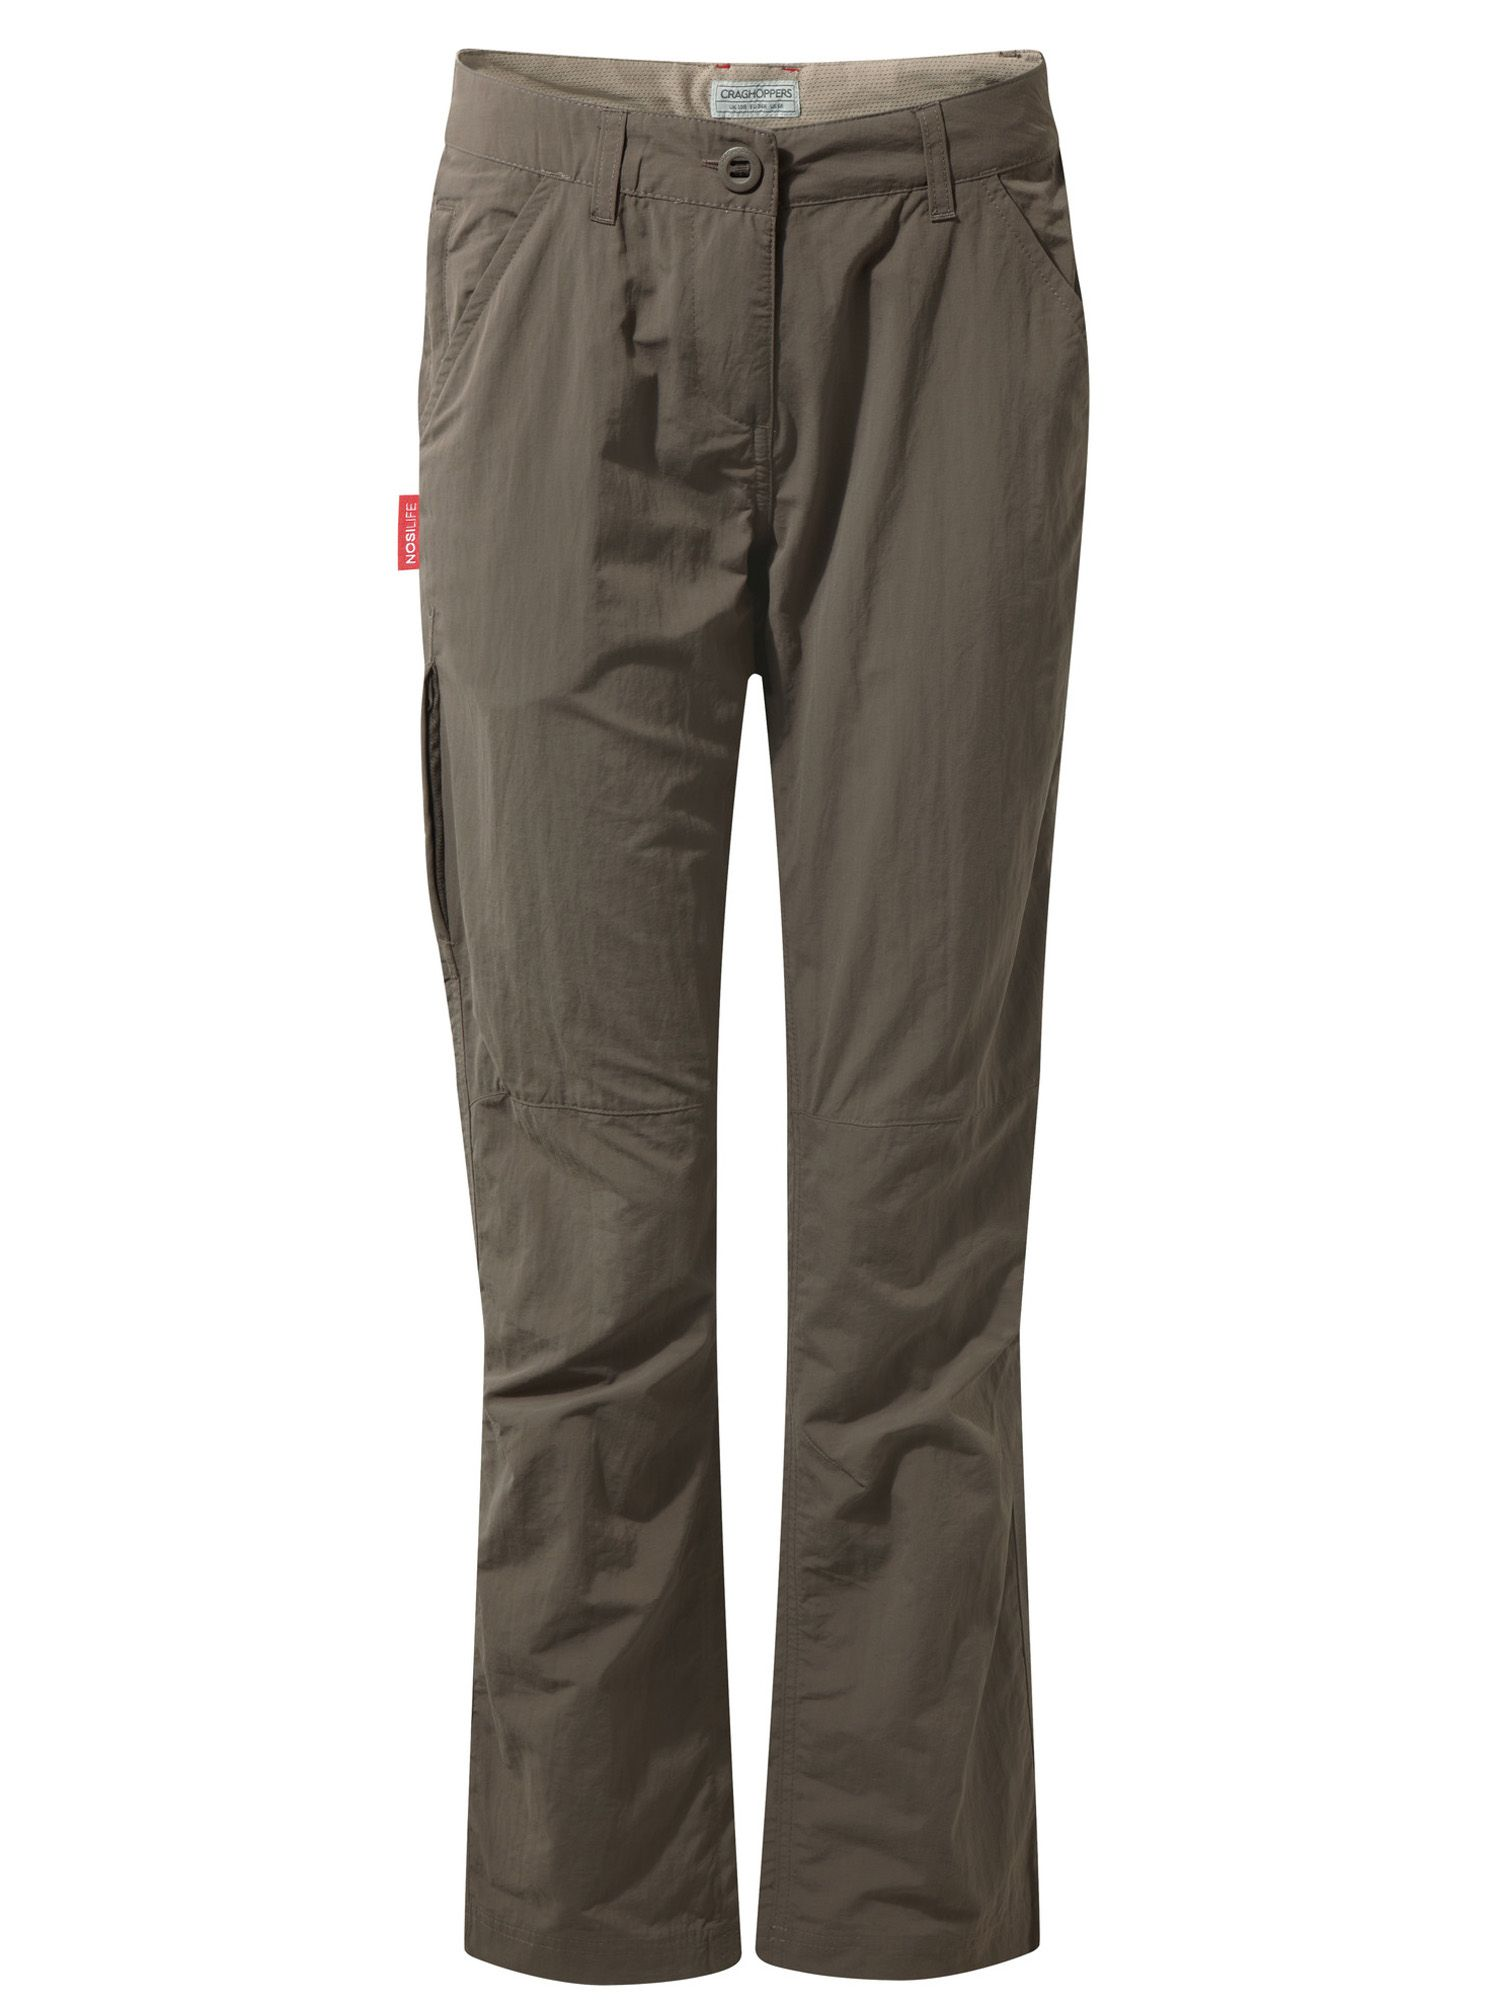 Craghoppers NosiLife Lightweight Trousers, Brown